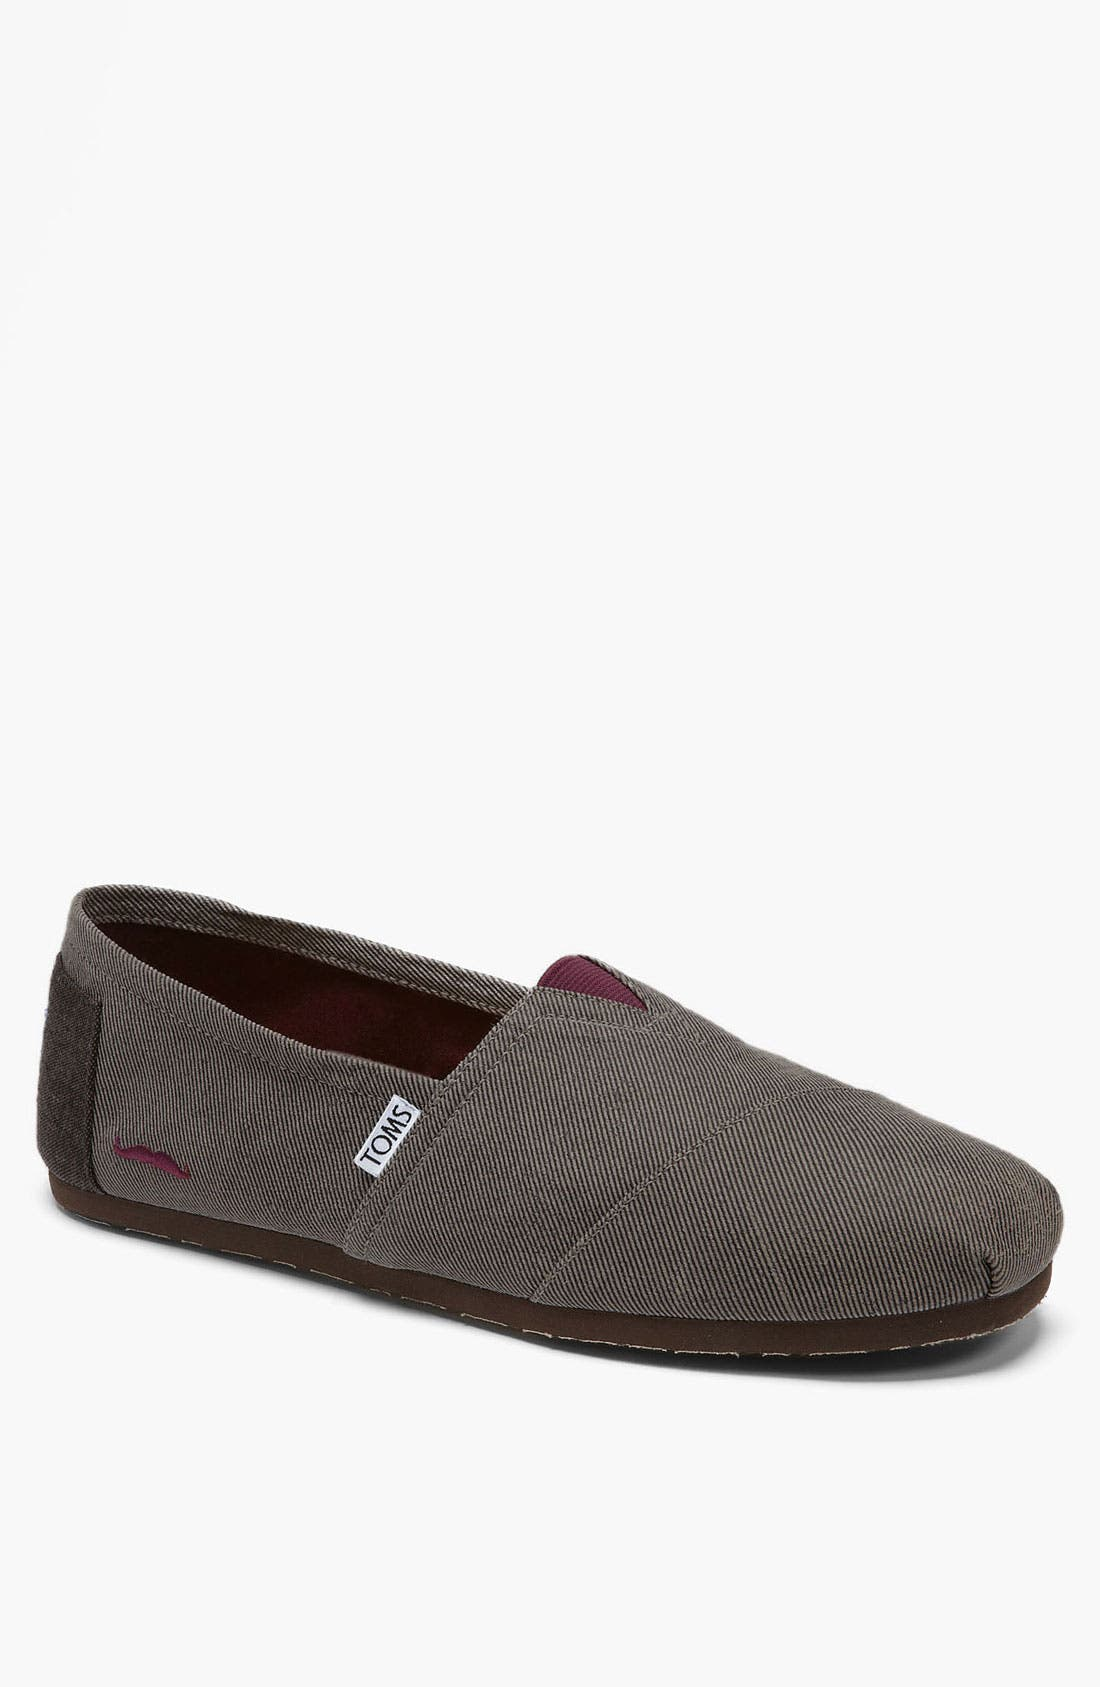 Main Image - TOMS 'Classic' Twill Slip-On (Men) (Limited Edition - Movember)